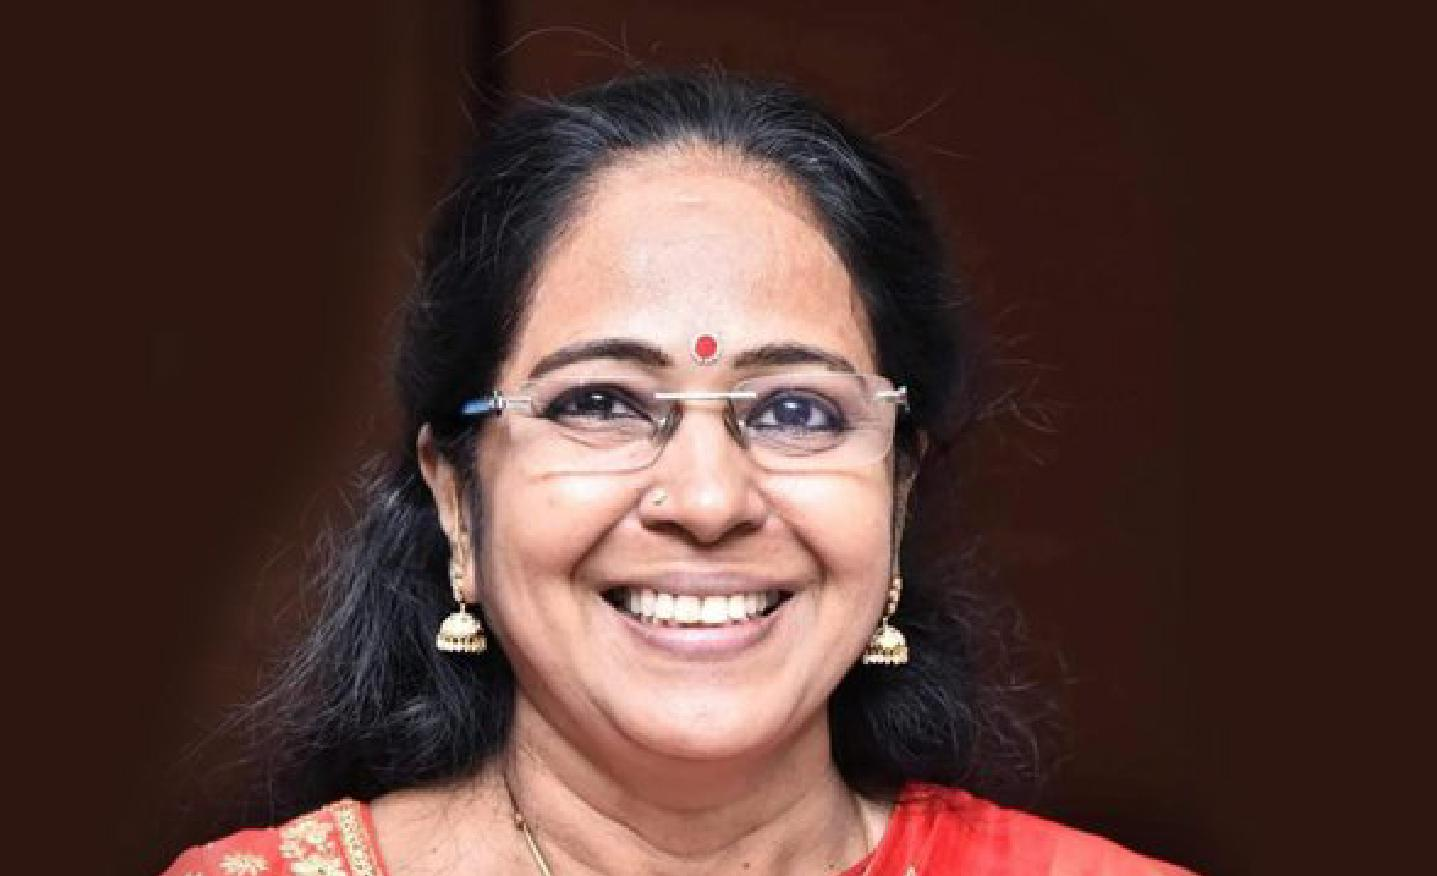 I took the decision to treat leprosy patients for free after an incident that changed my life: Dr. Renuka Ramakrishnan breaks boundaries with love